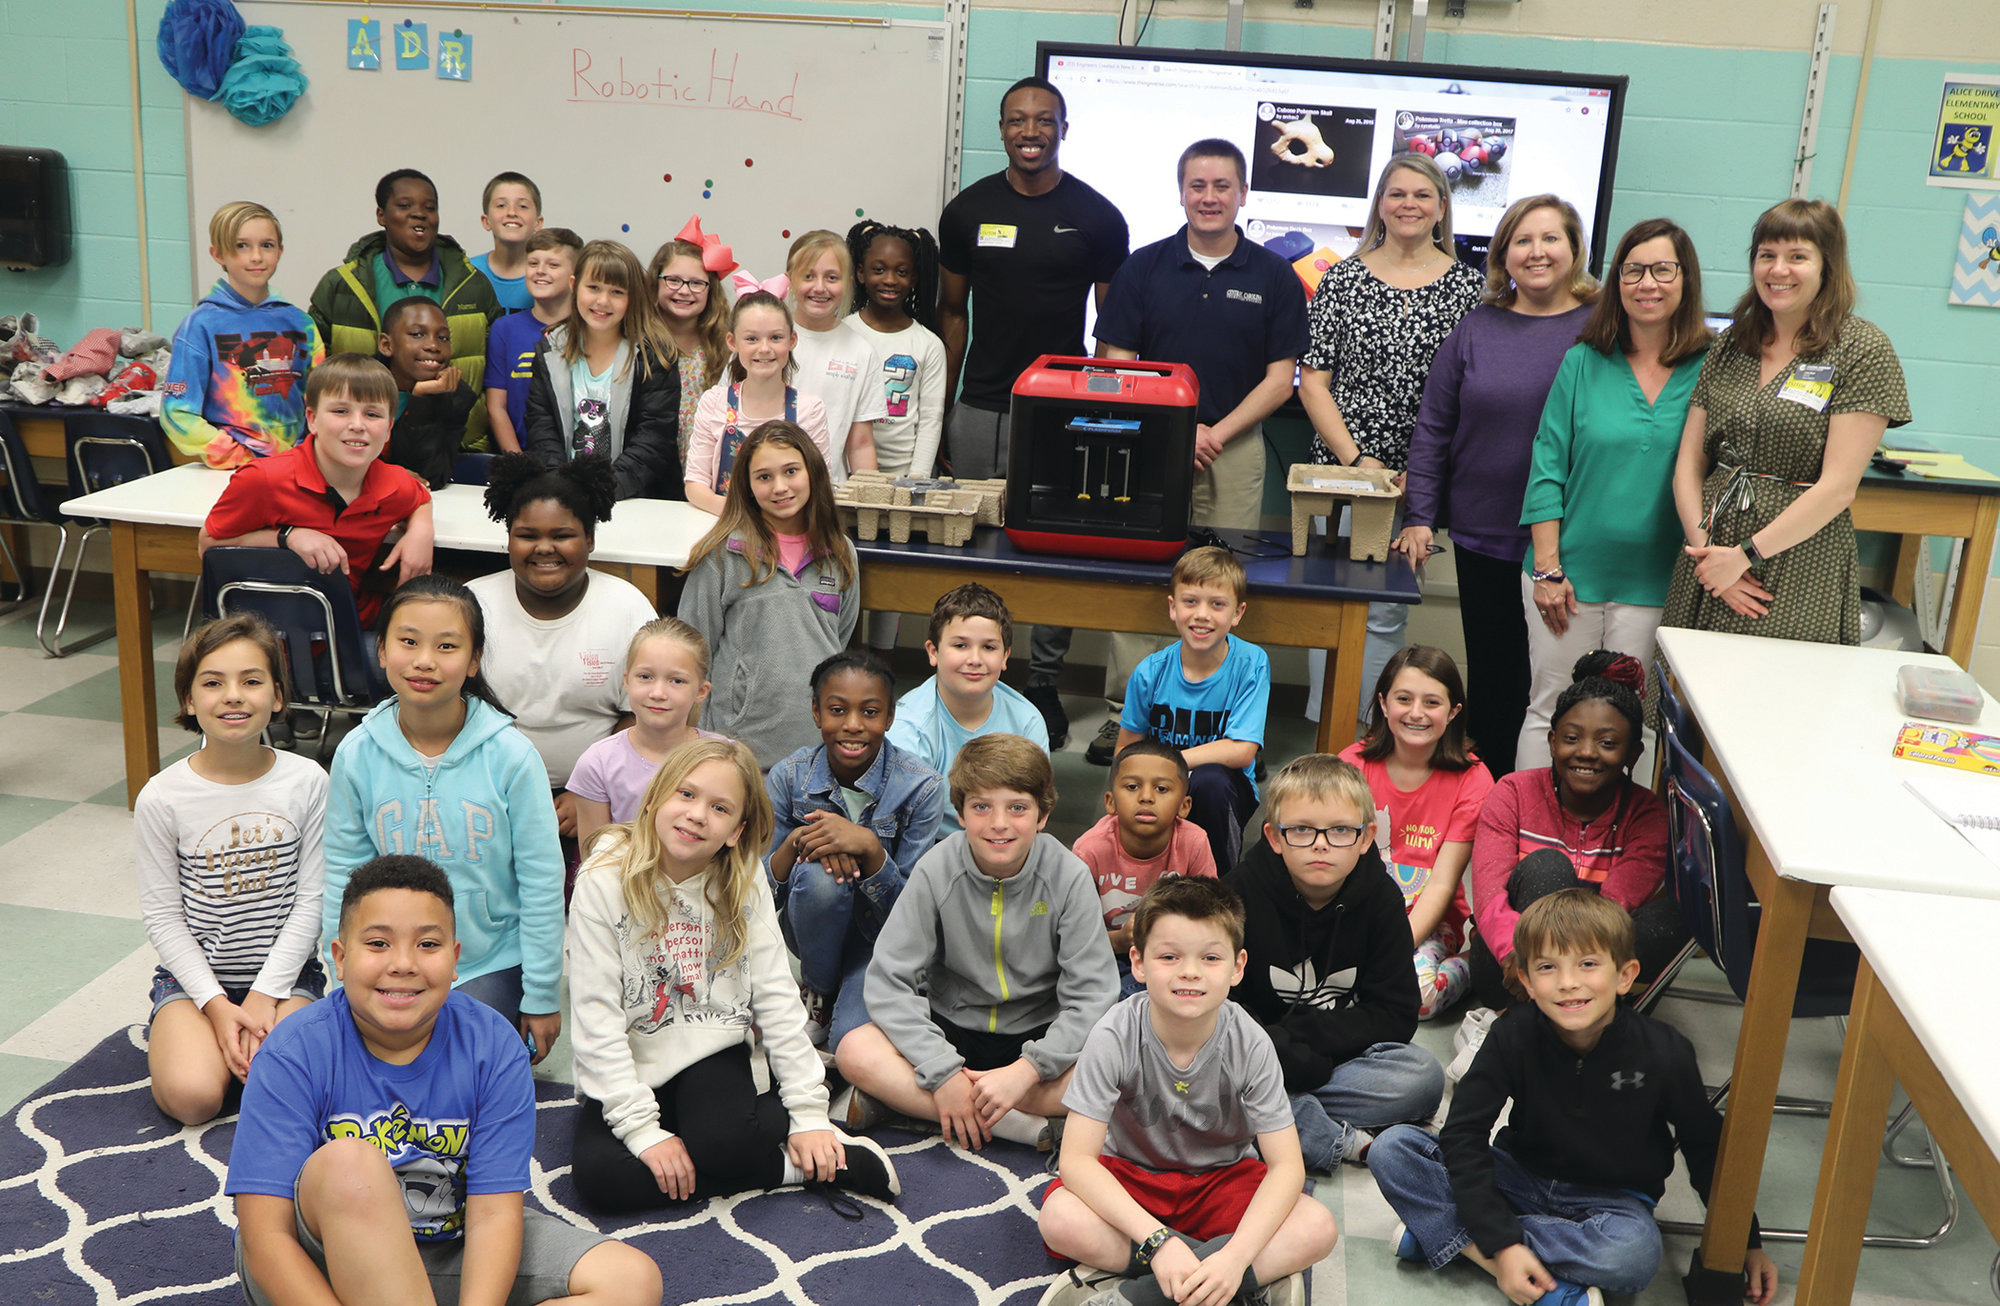 CCTC donated a new 3-D printer to Alice Drive Elementary School's STEM lab on April 8 as part of Partners in Education.